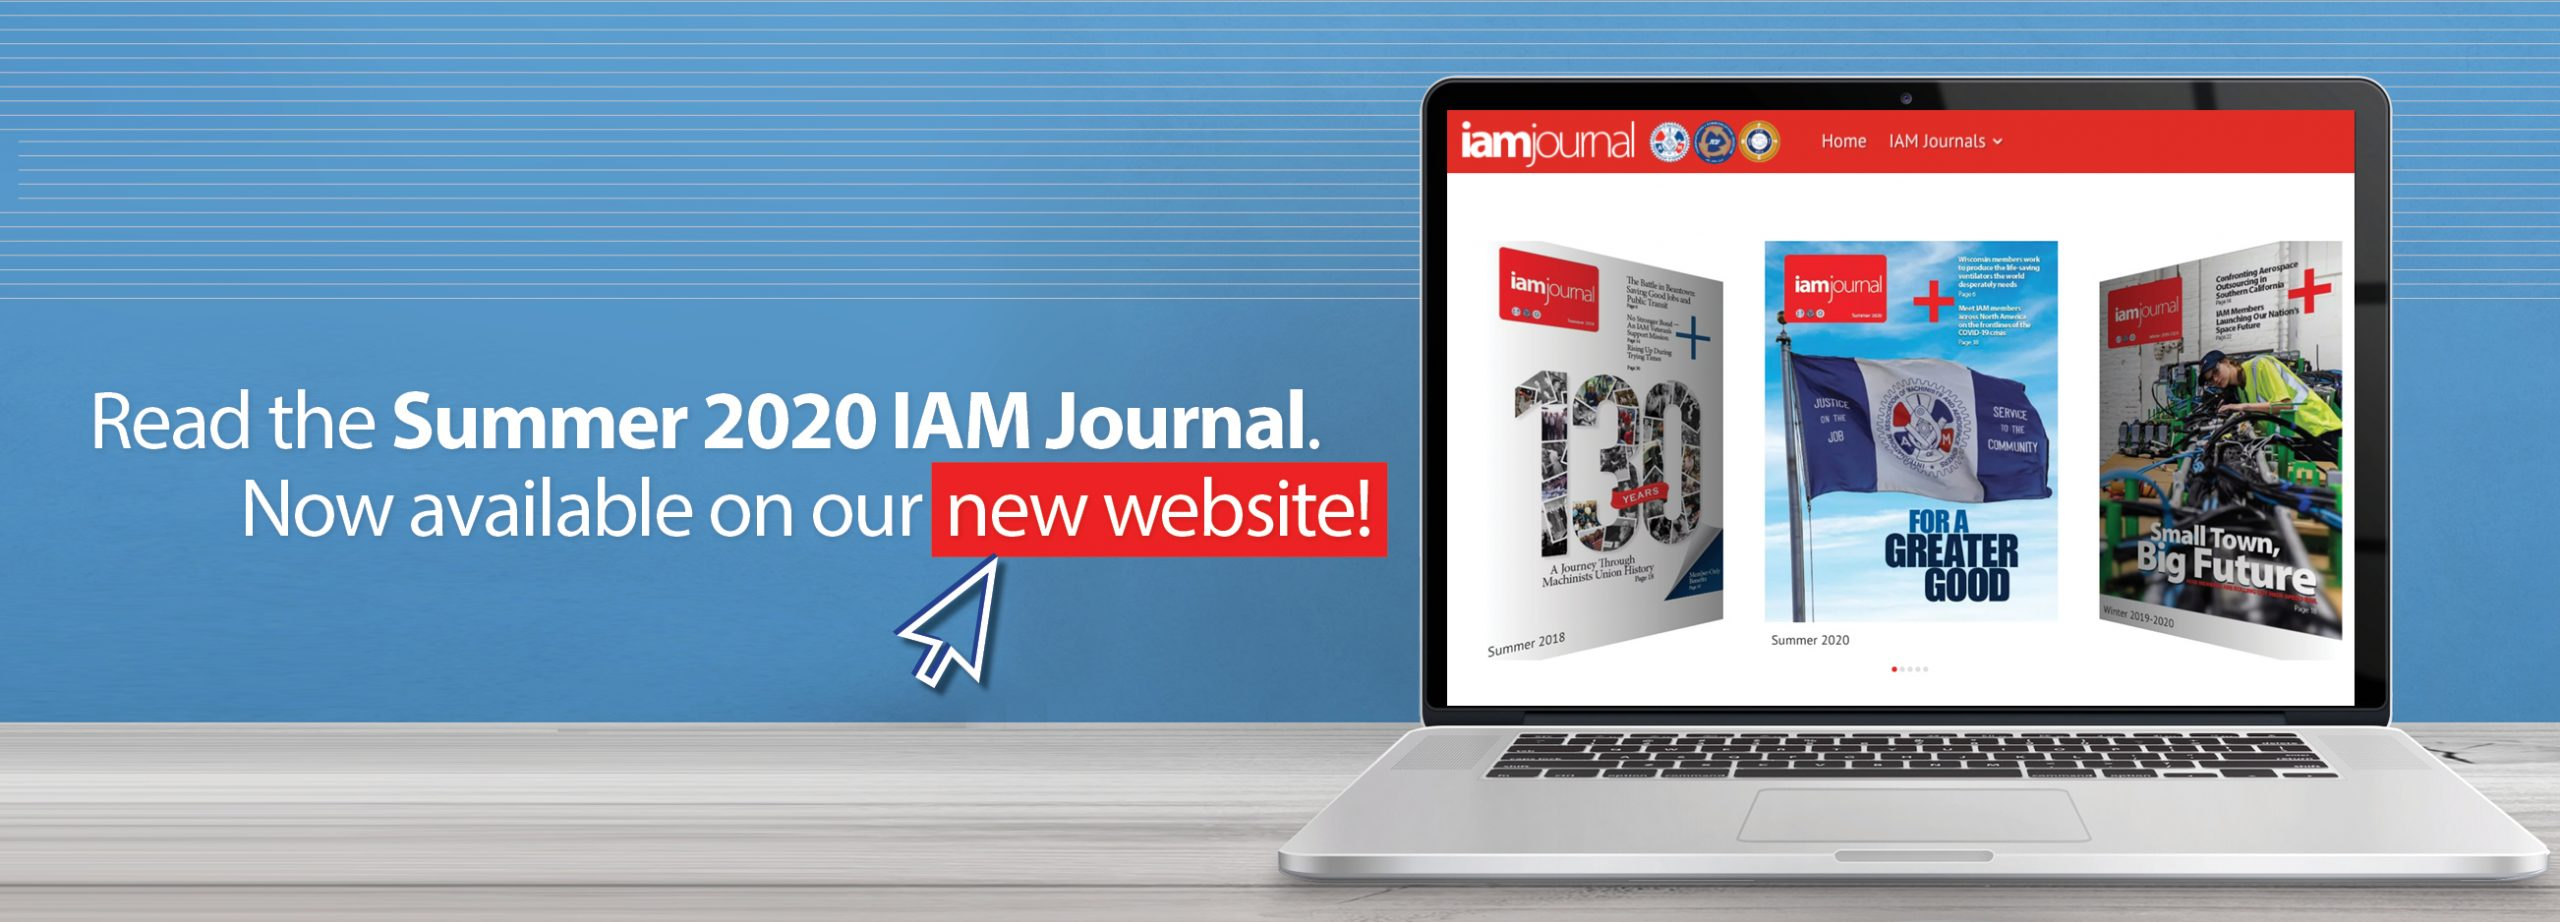 New IAM Journal Website Announcement